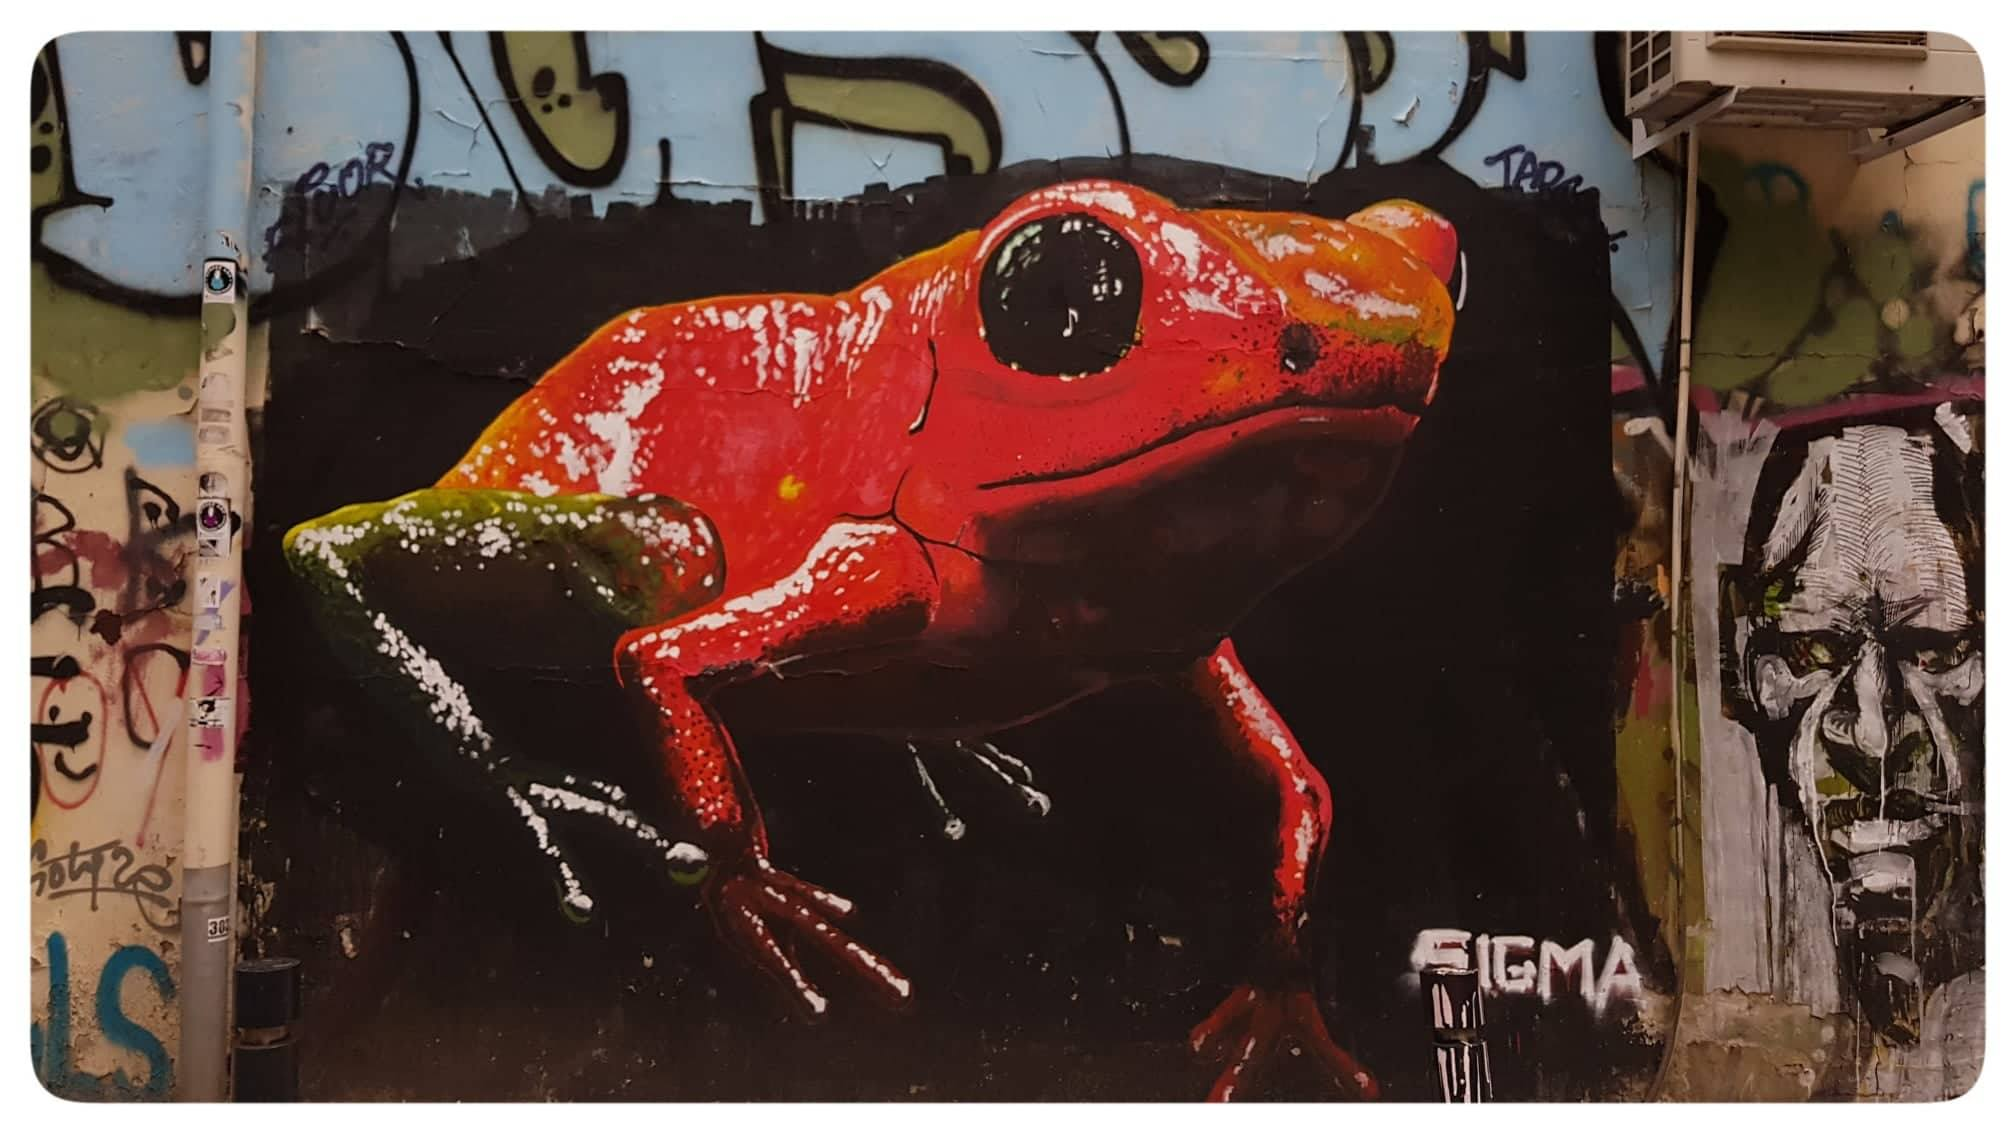 """The Frog"" - Artist : SIGMA"